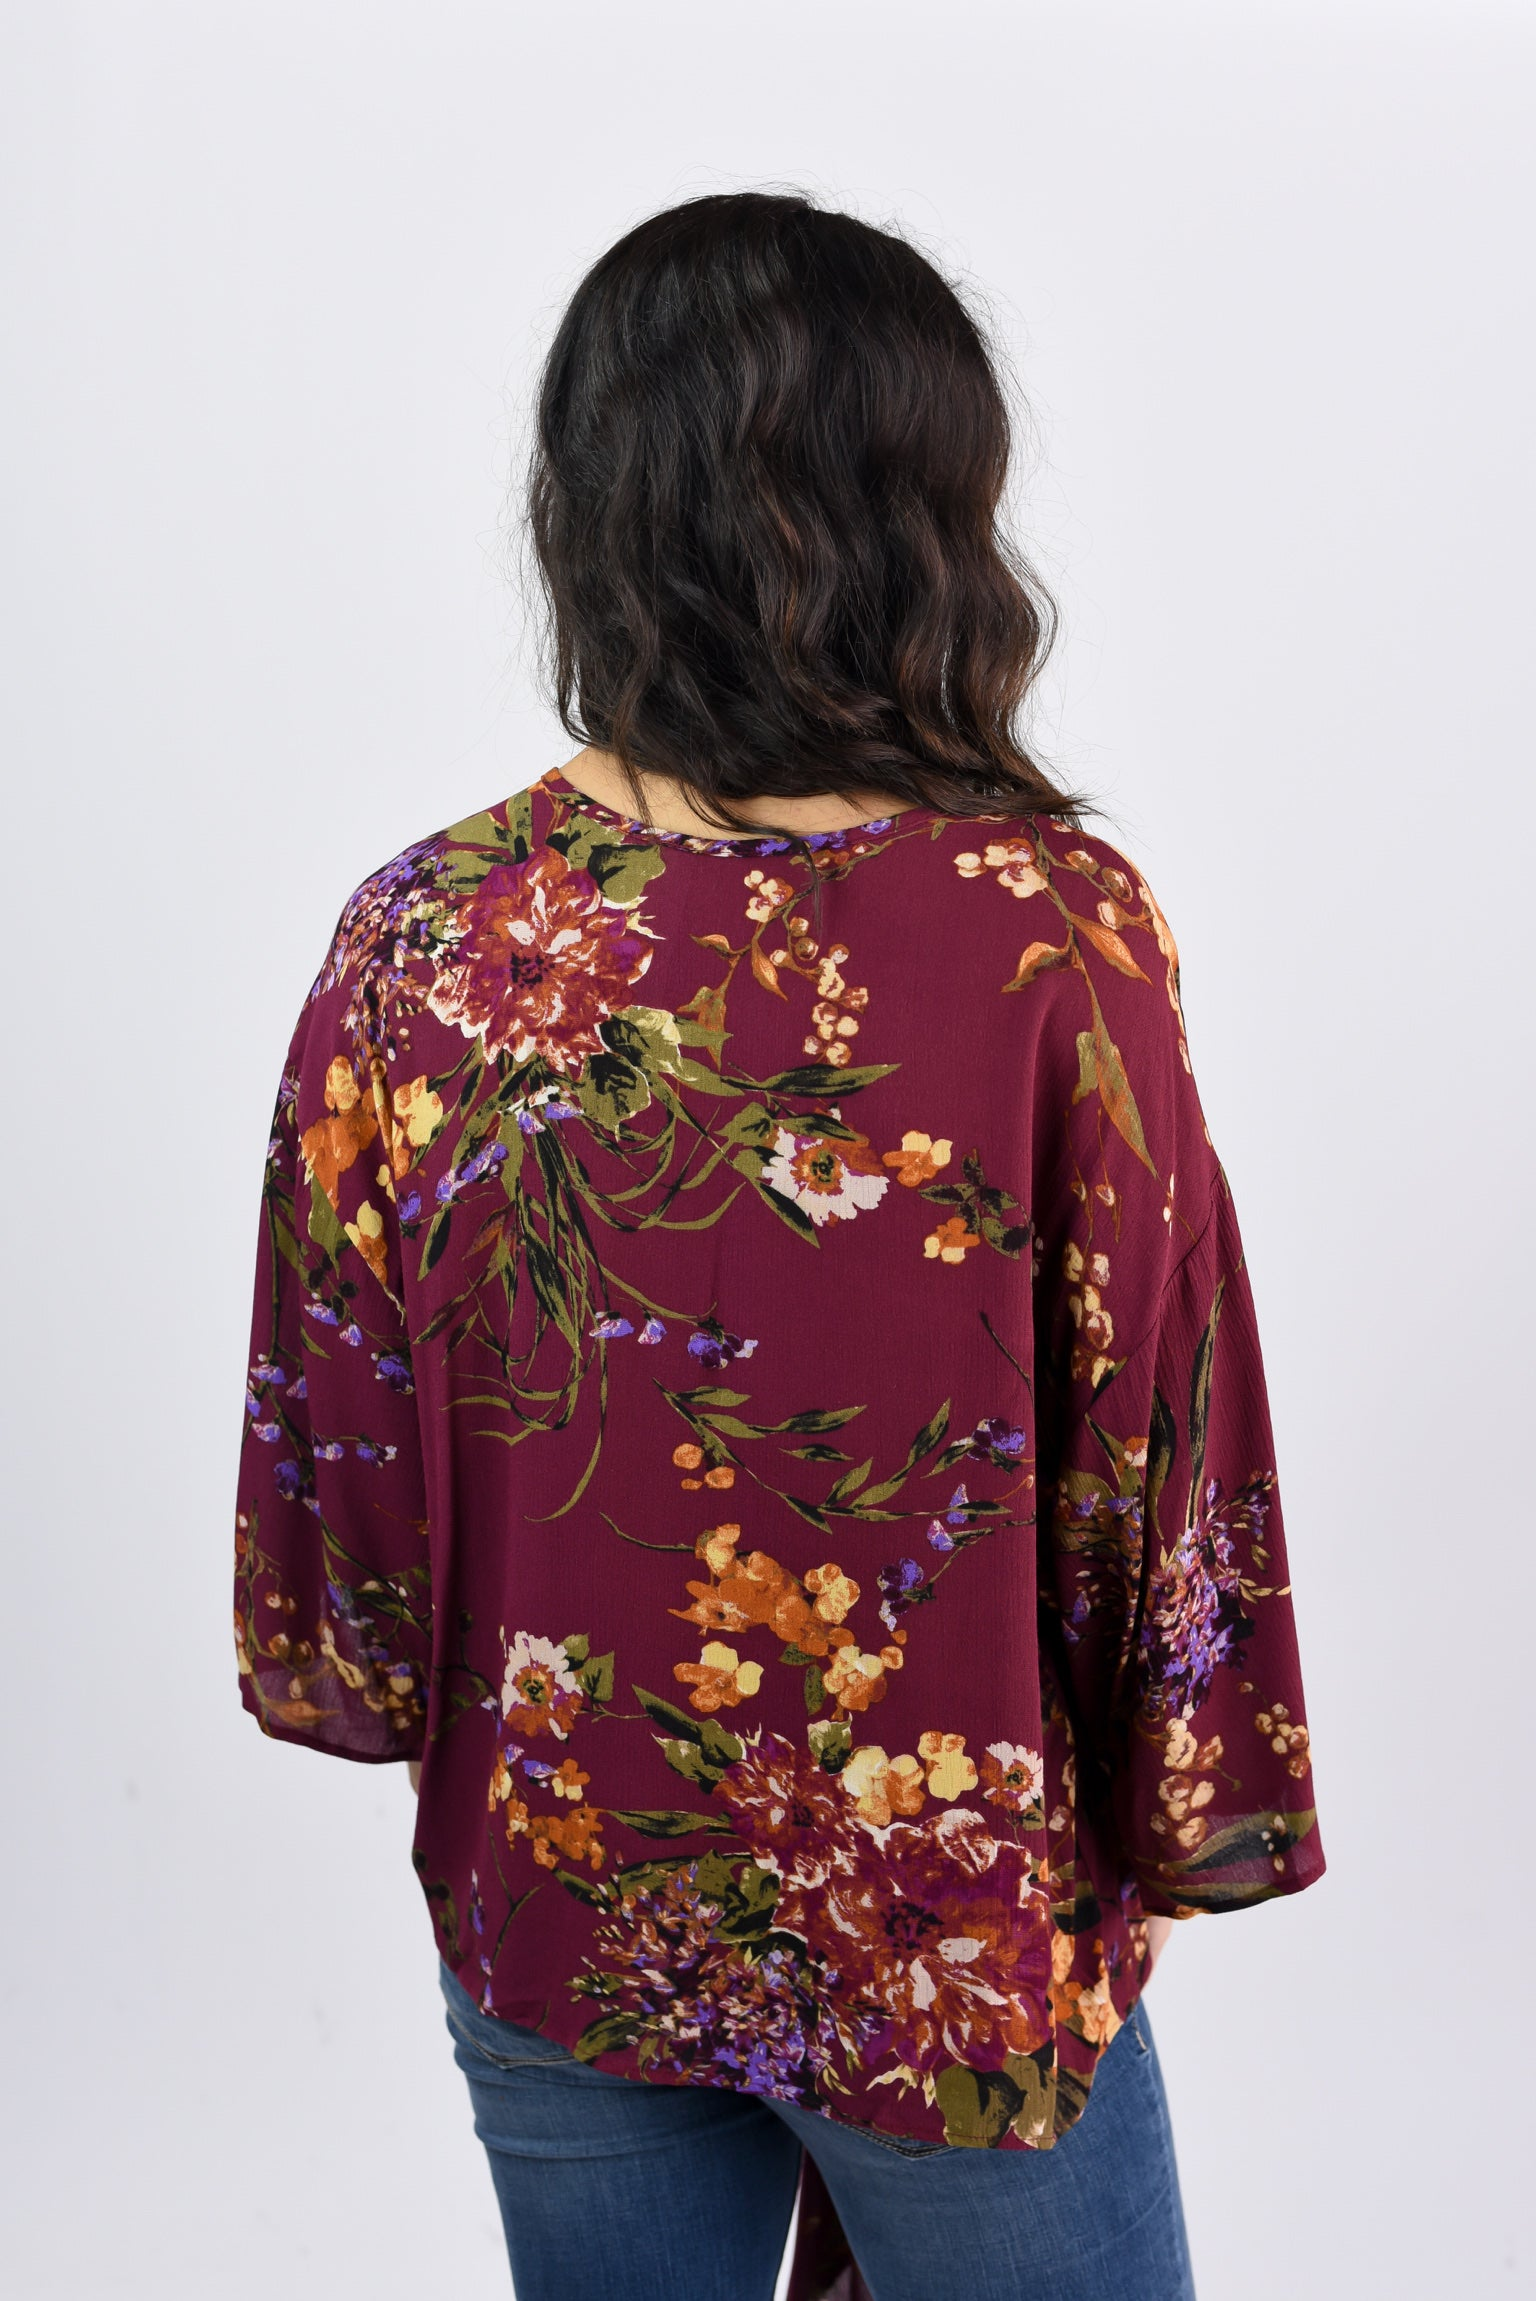 Floral Charm Burgundy Front Tie Bell Sleeve Top